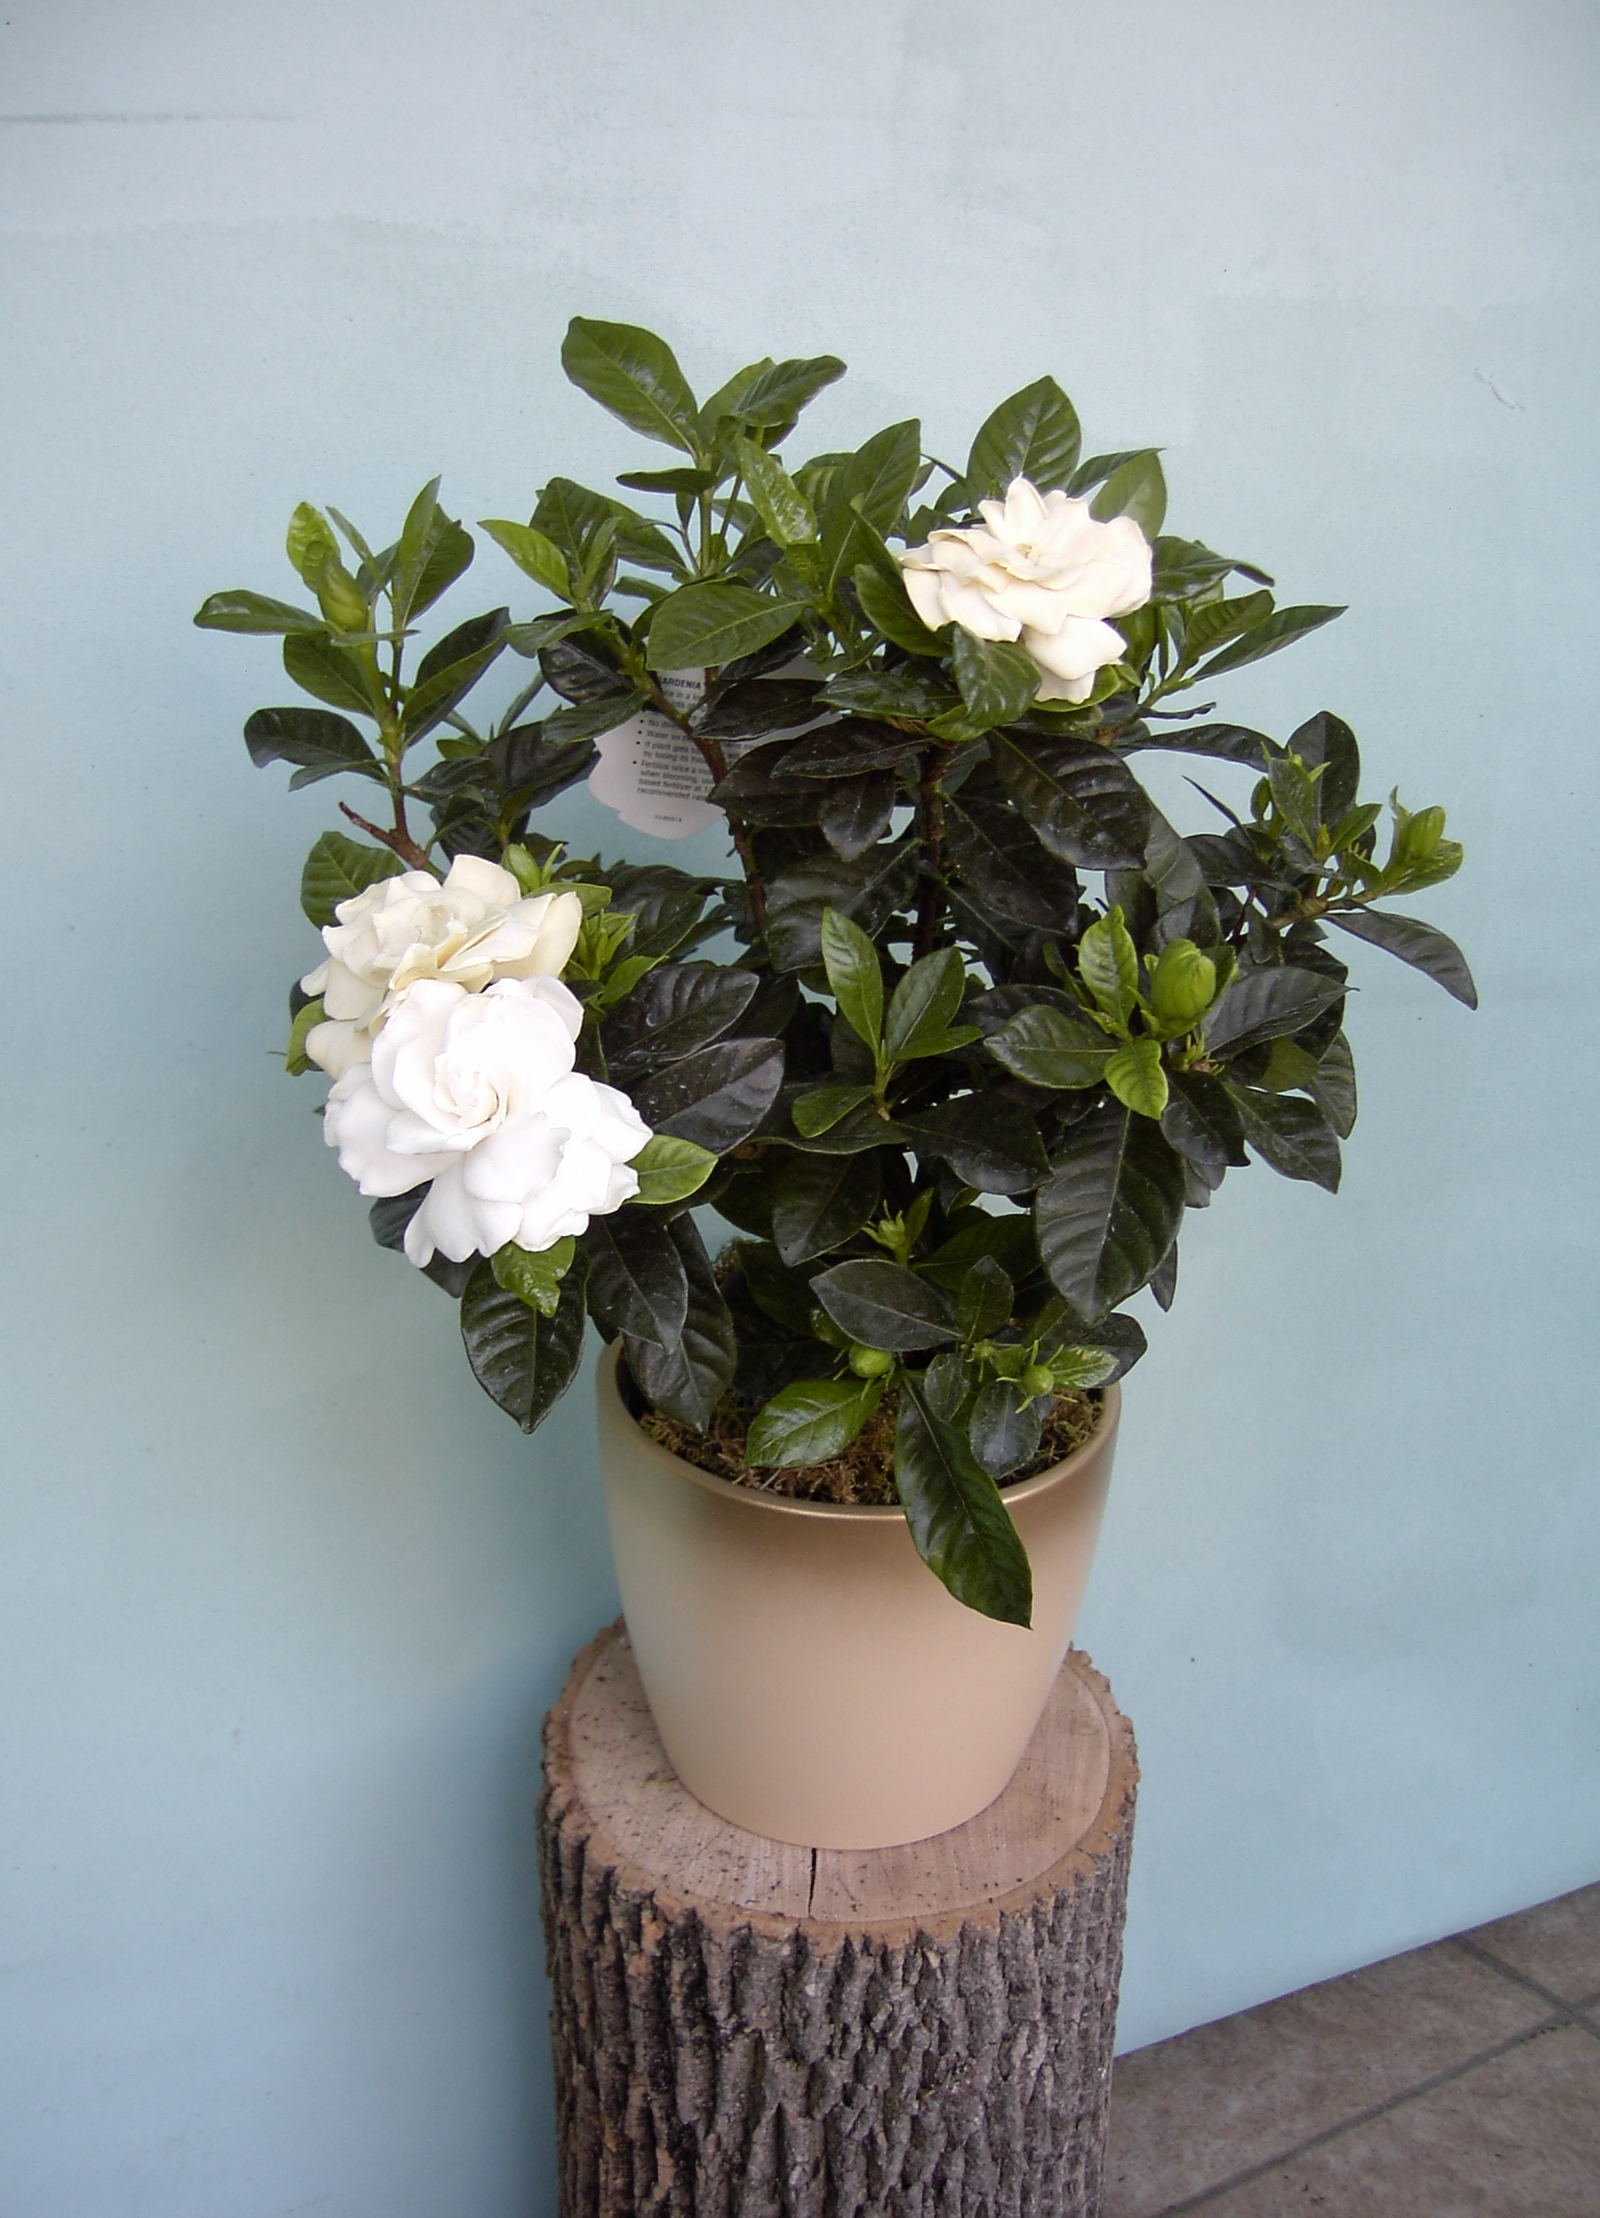 helleborus and gardenia plants